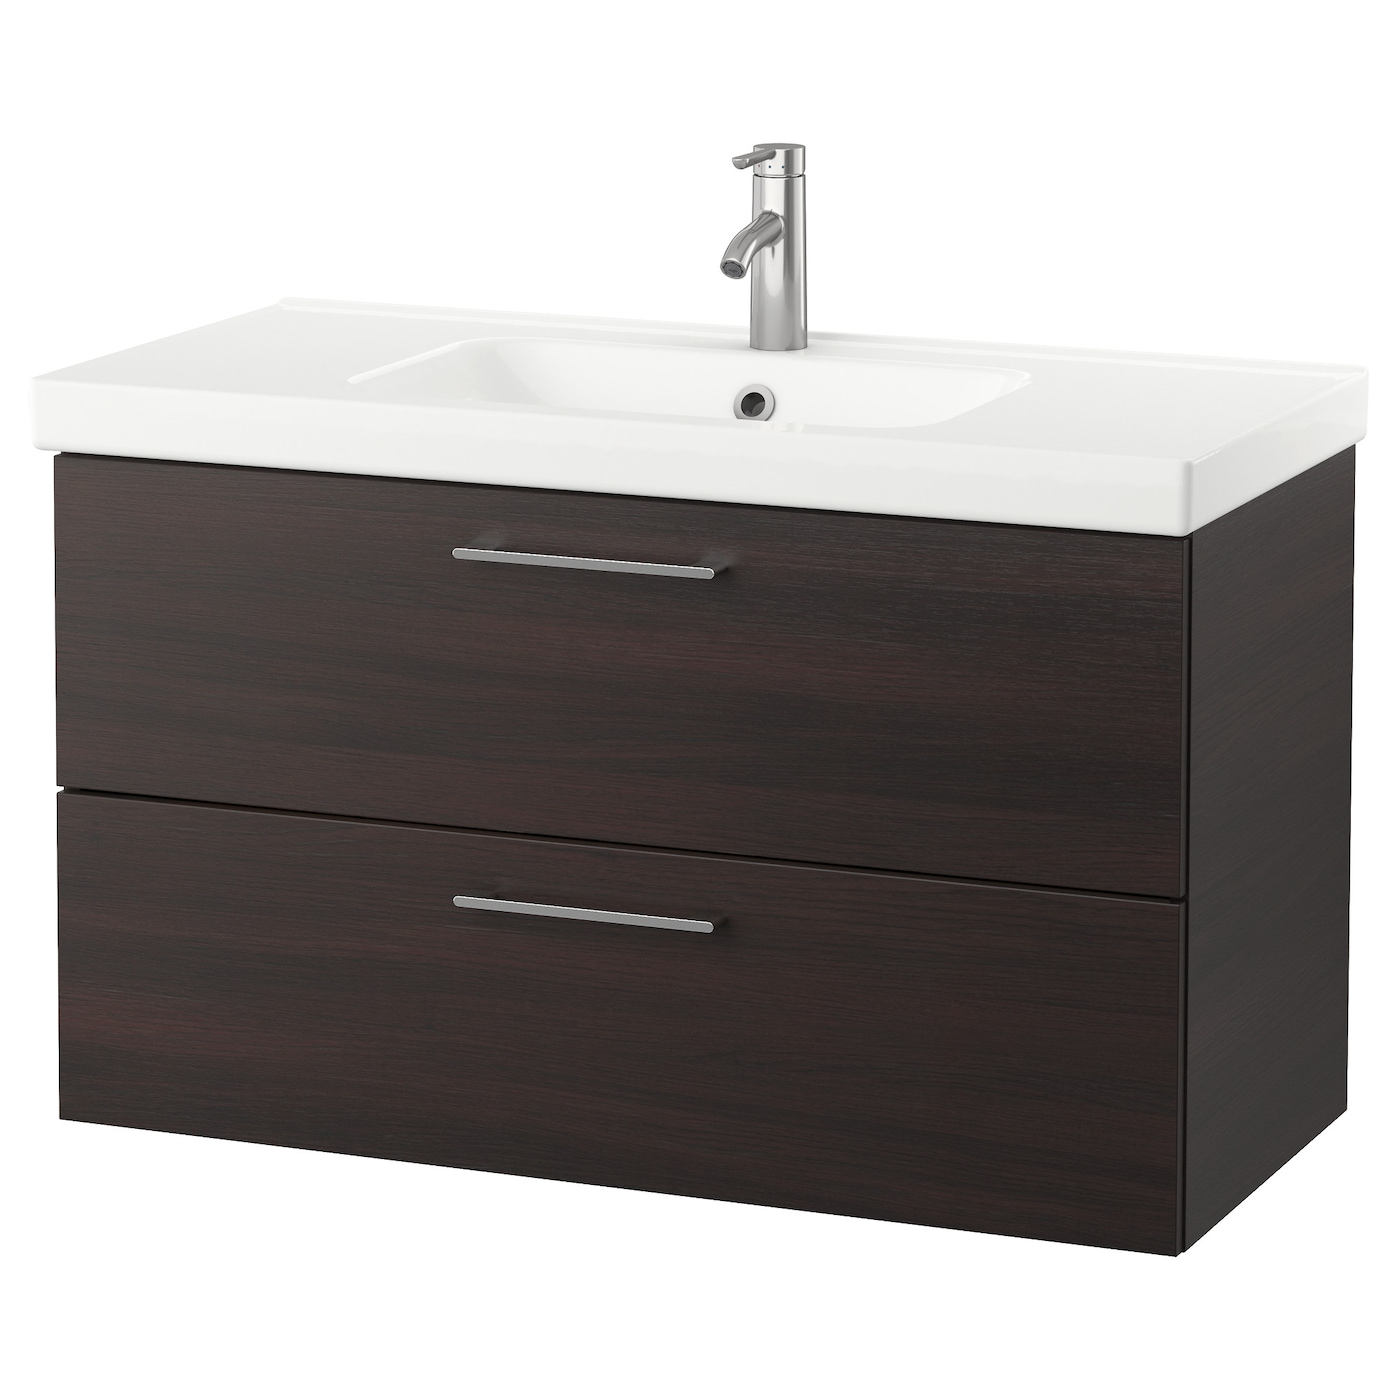 Godmorgon s rie structures et pieds clairage ikea for Eclairage lavabo